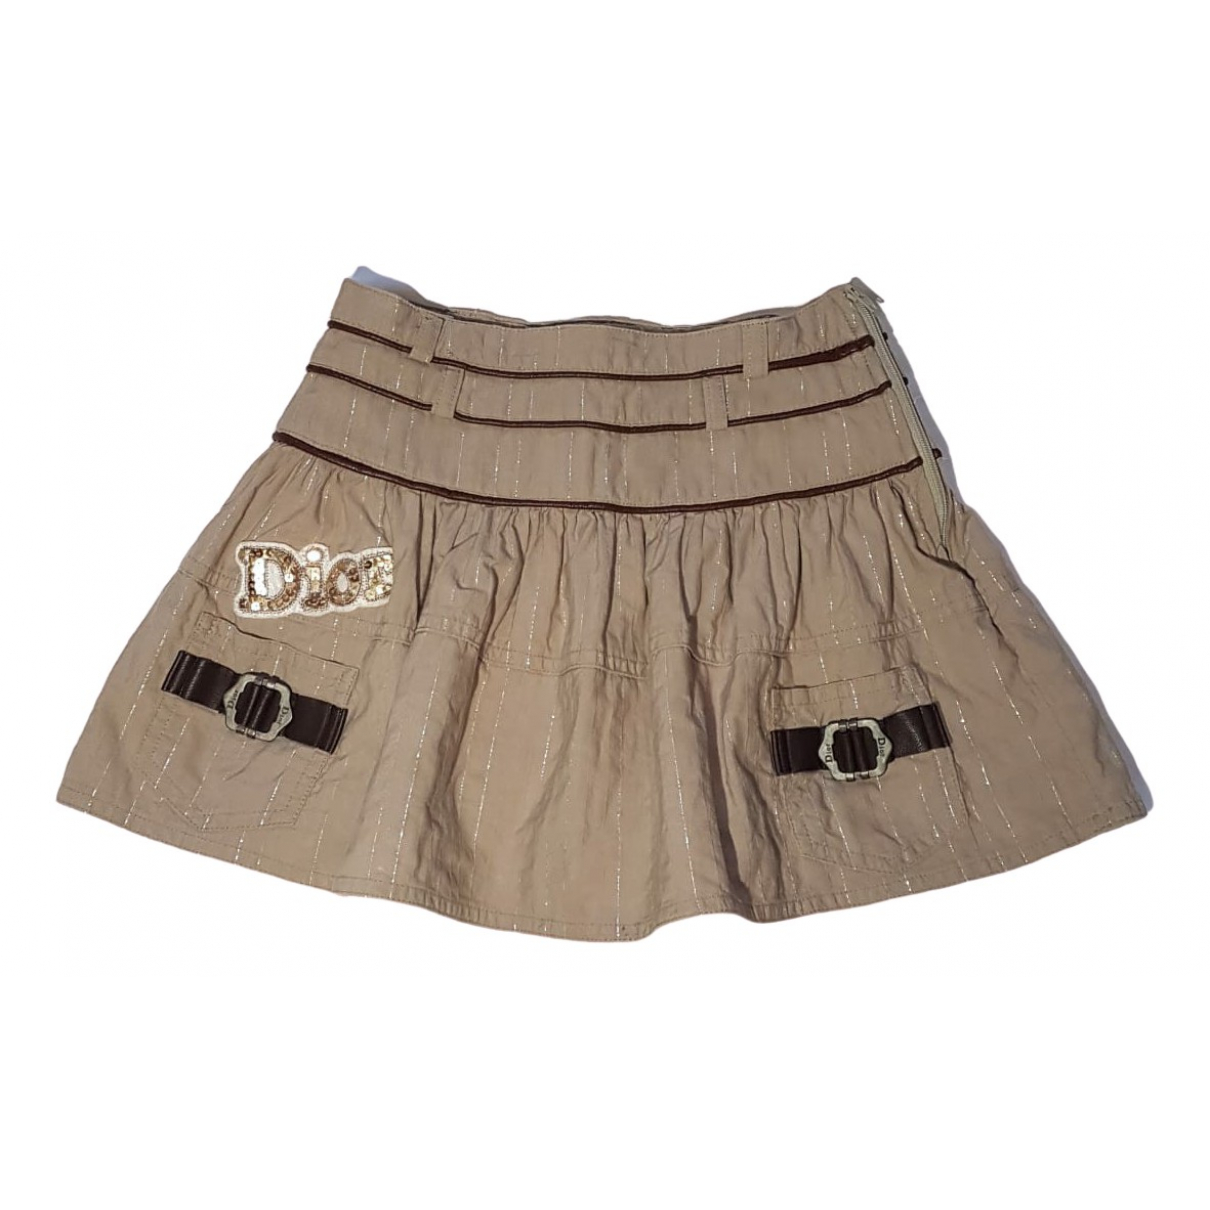 Dior \N Beige Cotton skirt for Kids 6 years - up to 114cm FR